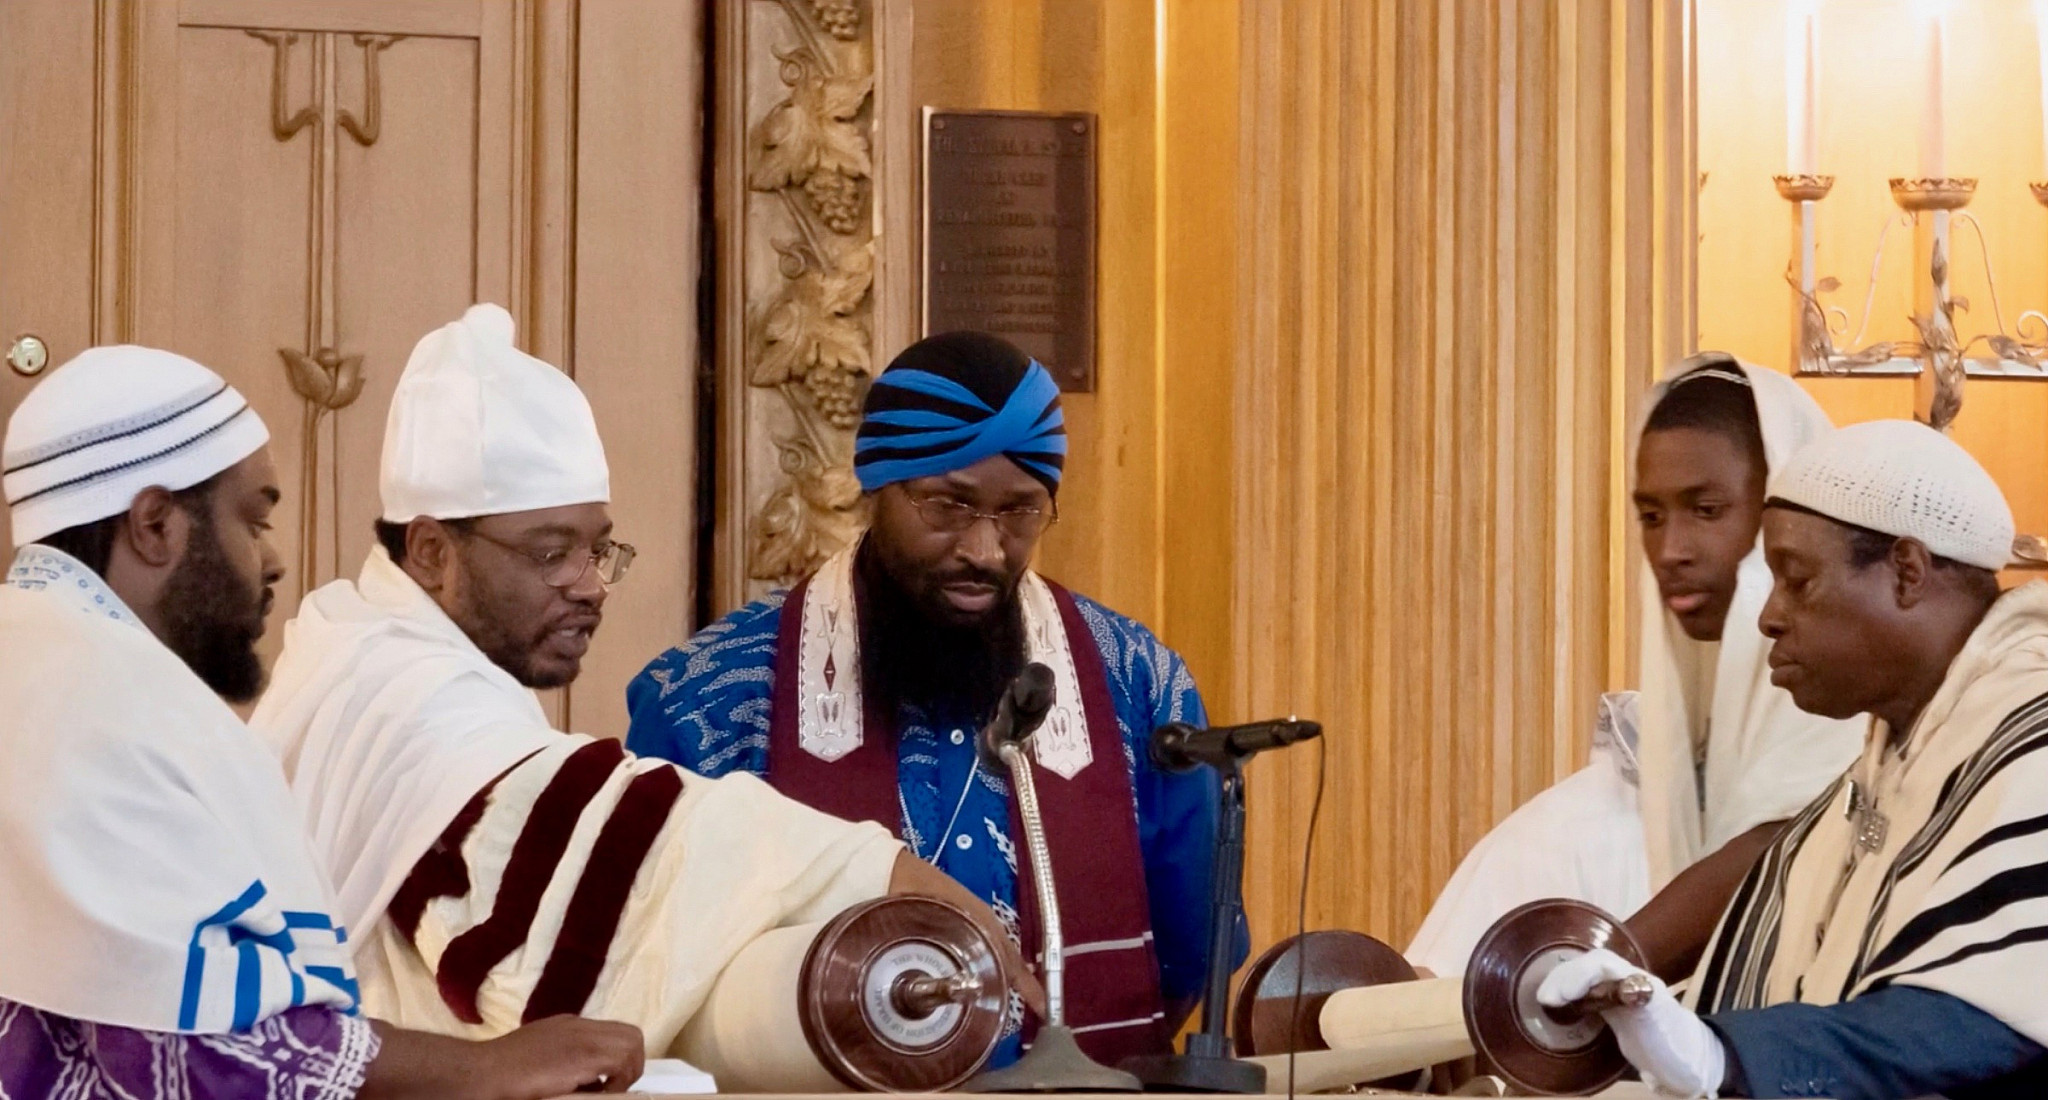 No, Hebrew Israelites are not a threat